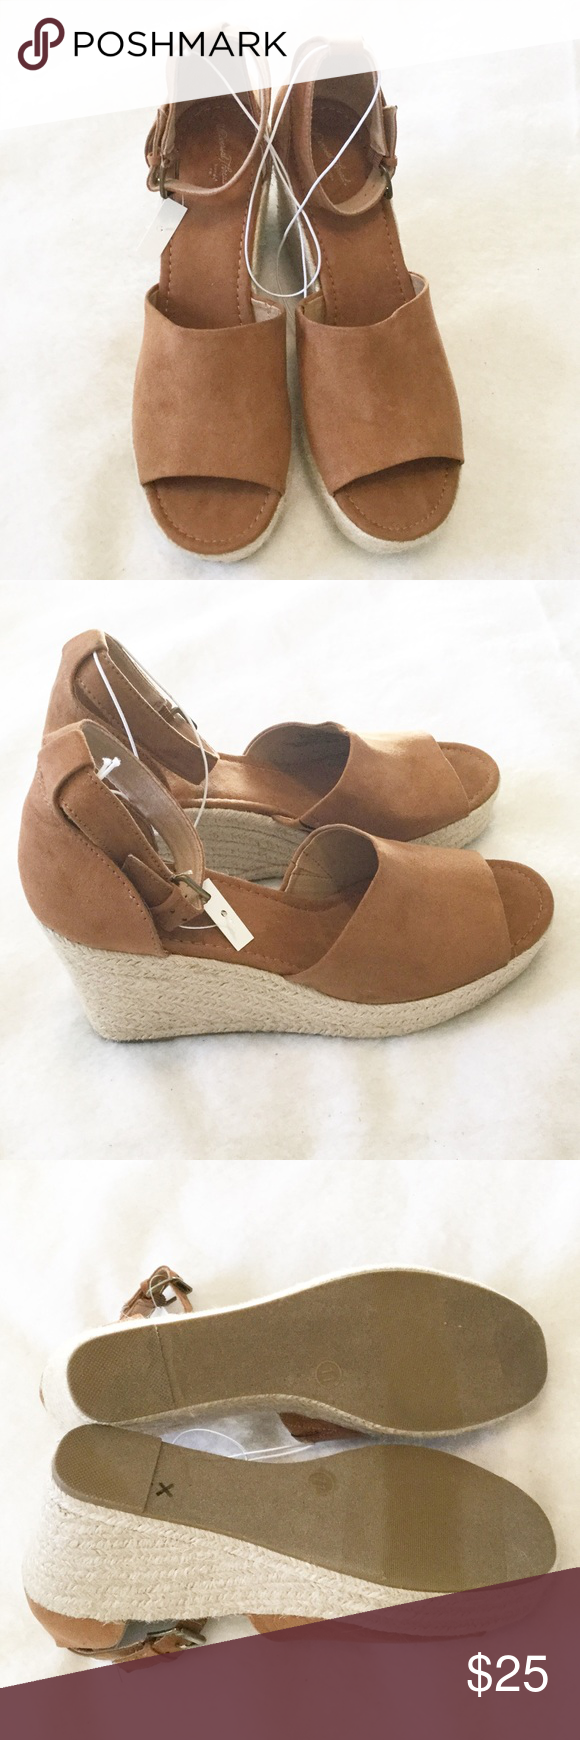 """3cdffa0d1c Universal Thread """"Emery"""" Espadrille Sandals NWT, tag almost completely cut  off. No"""